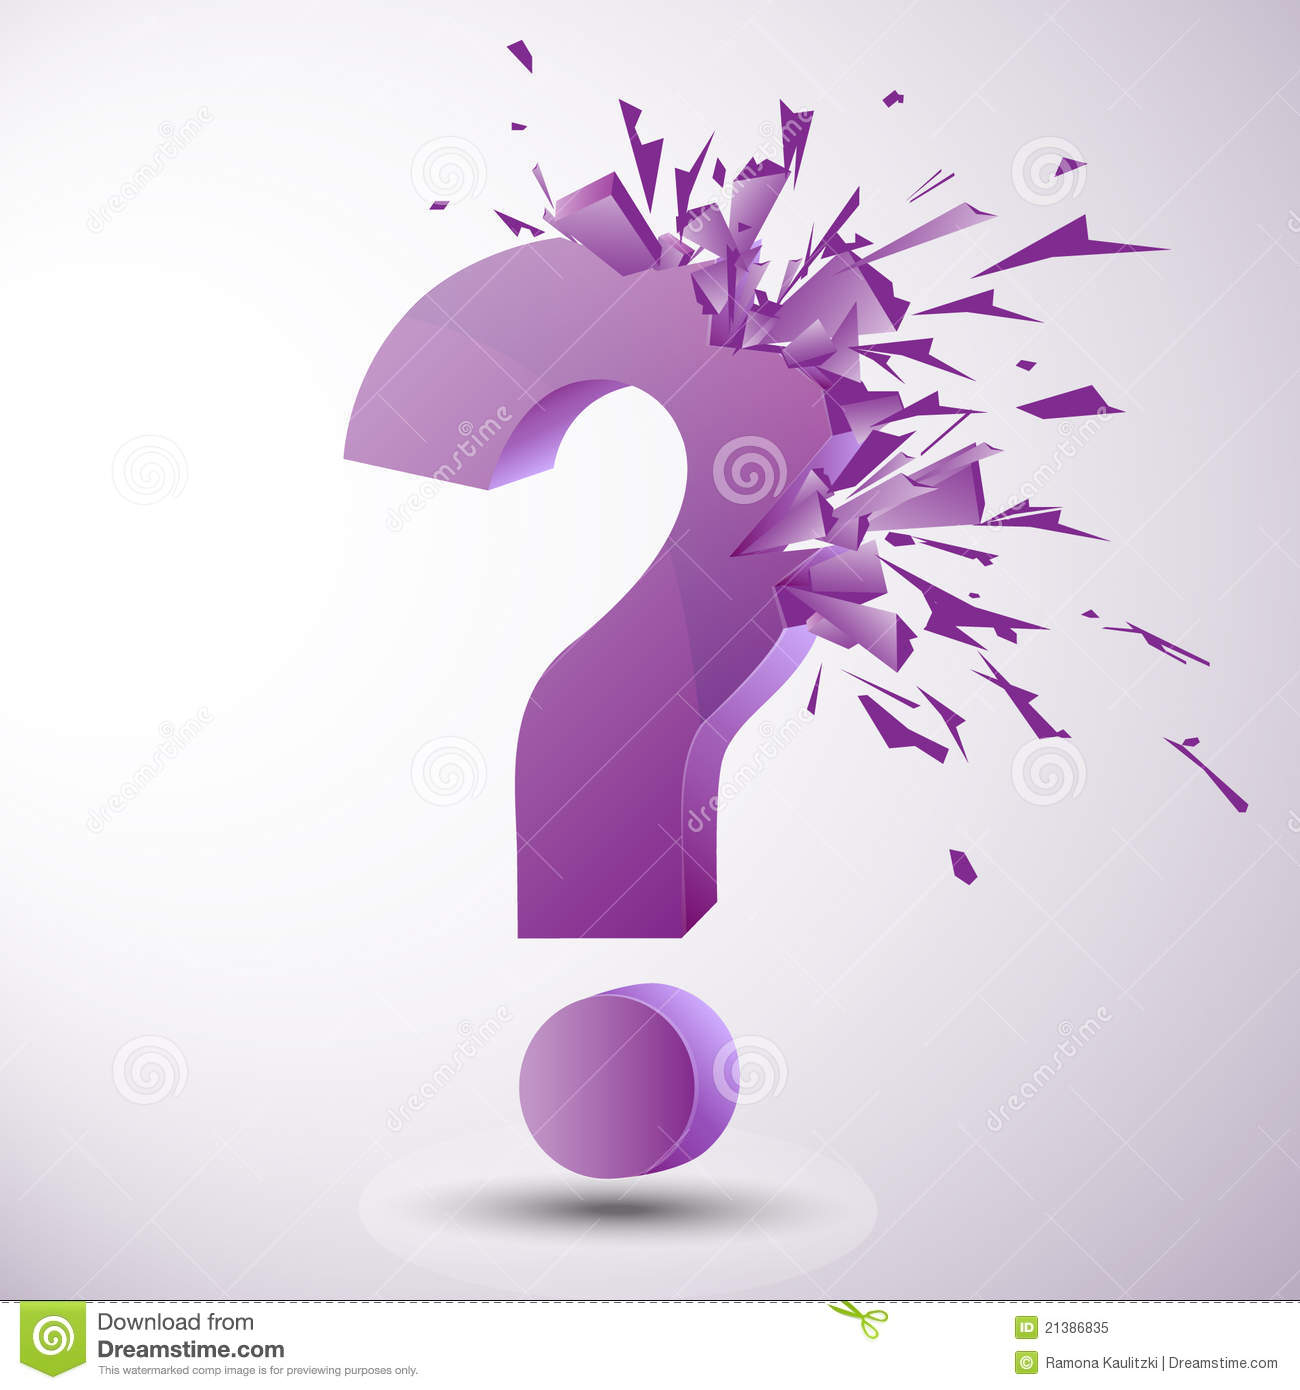 question mark royalty free stock photo   image 21386835